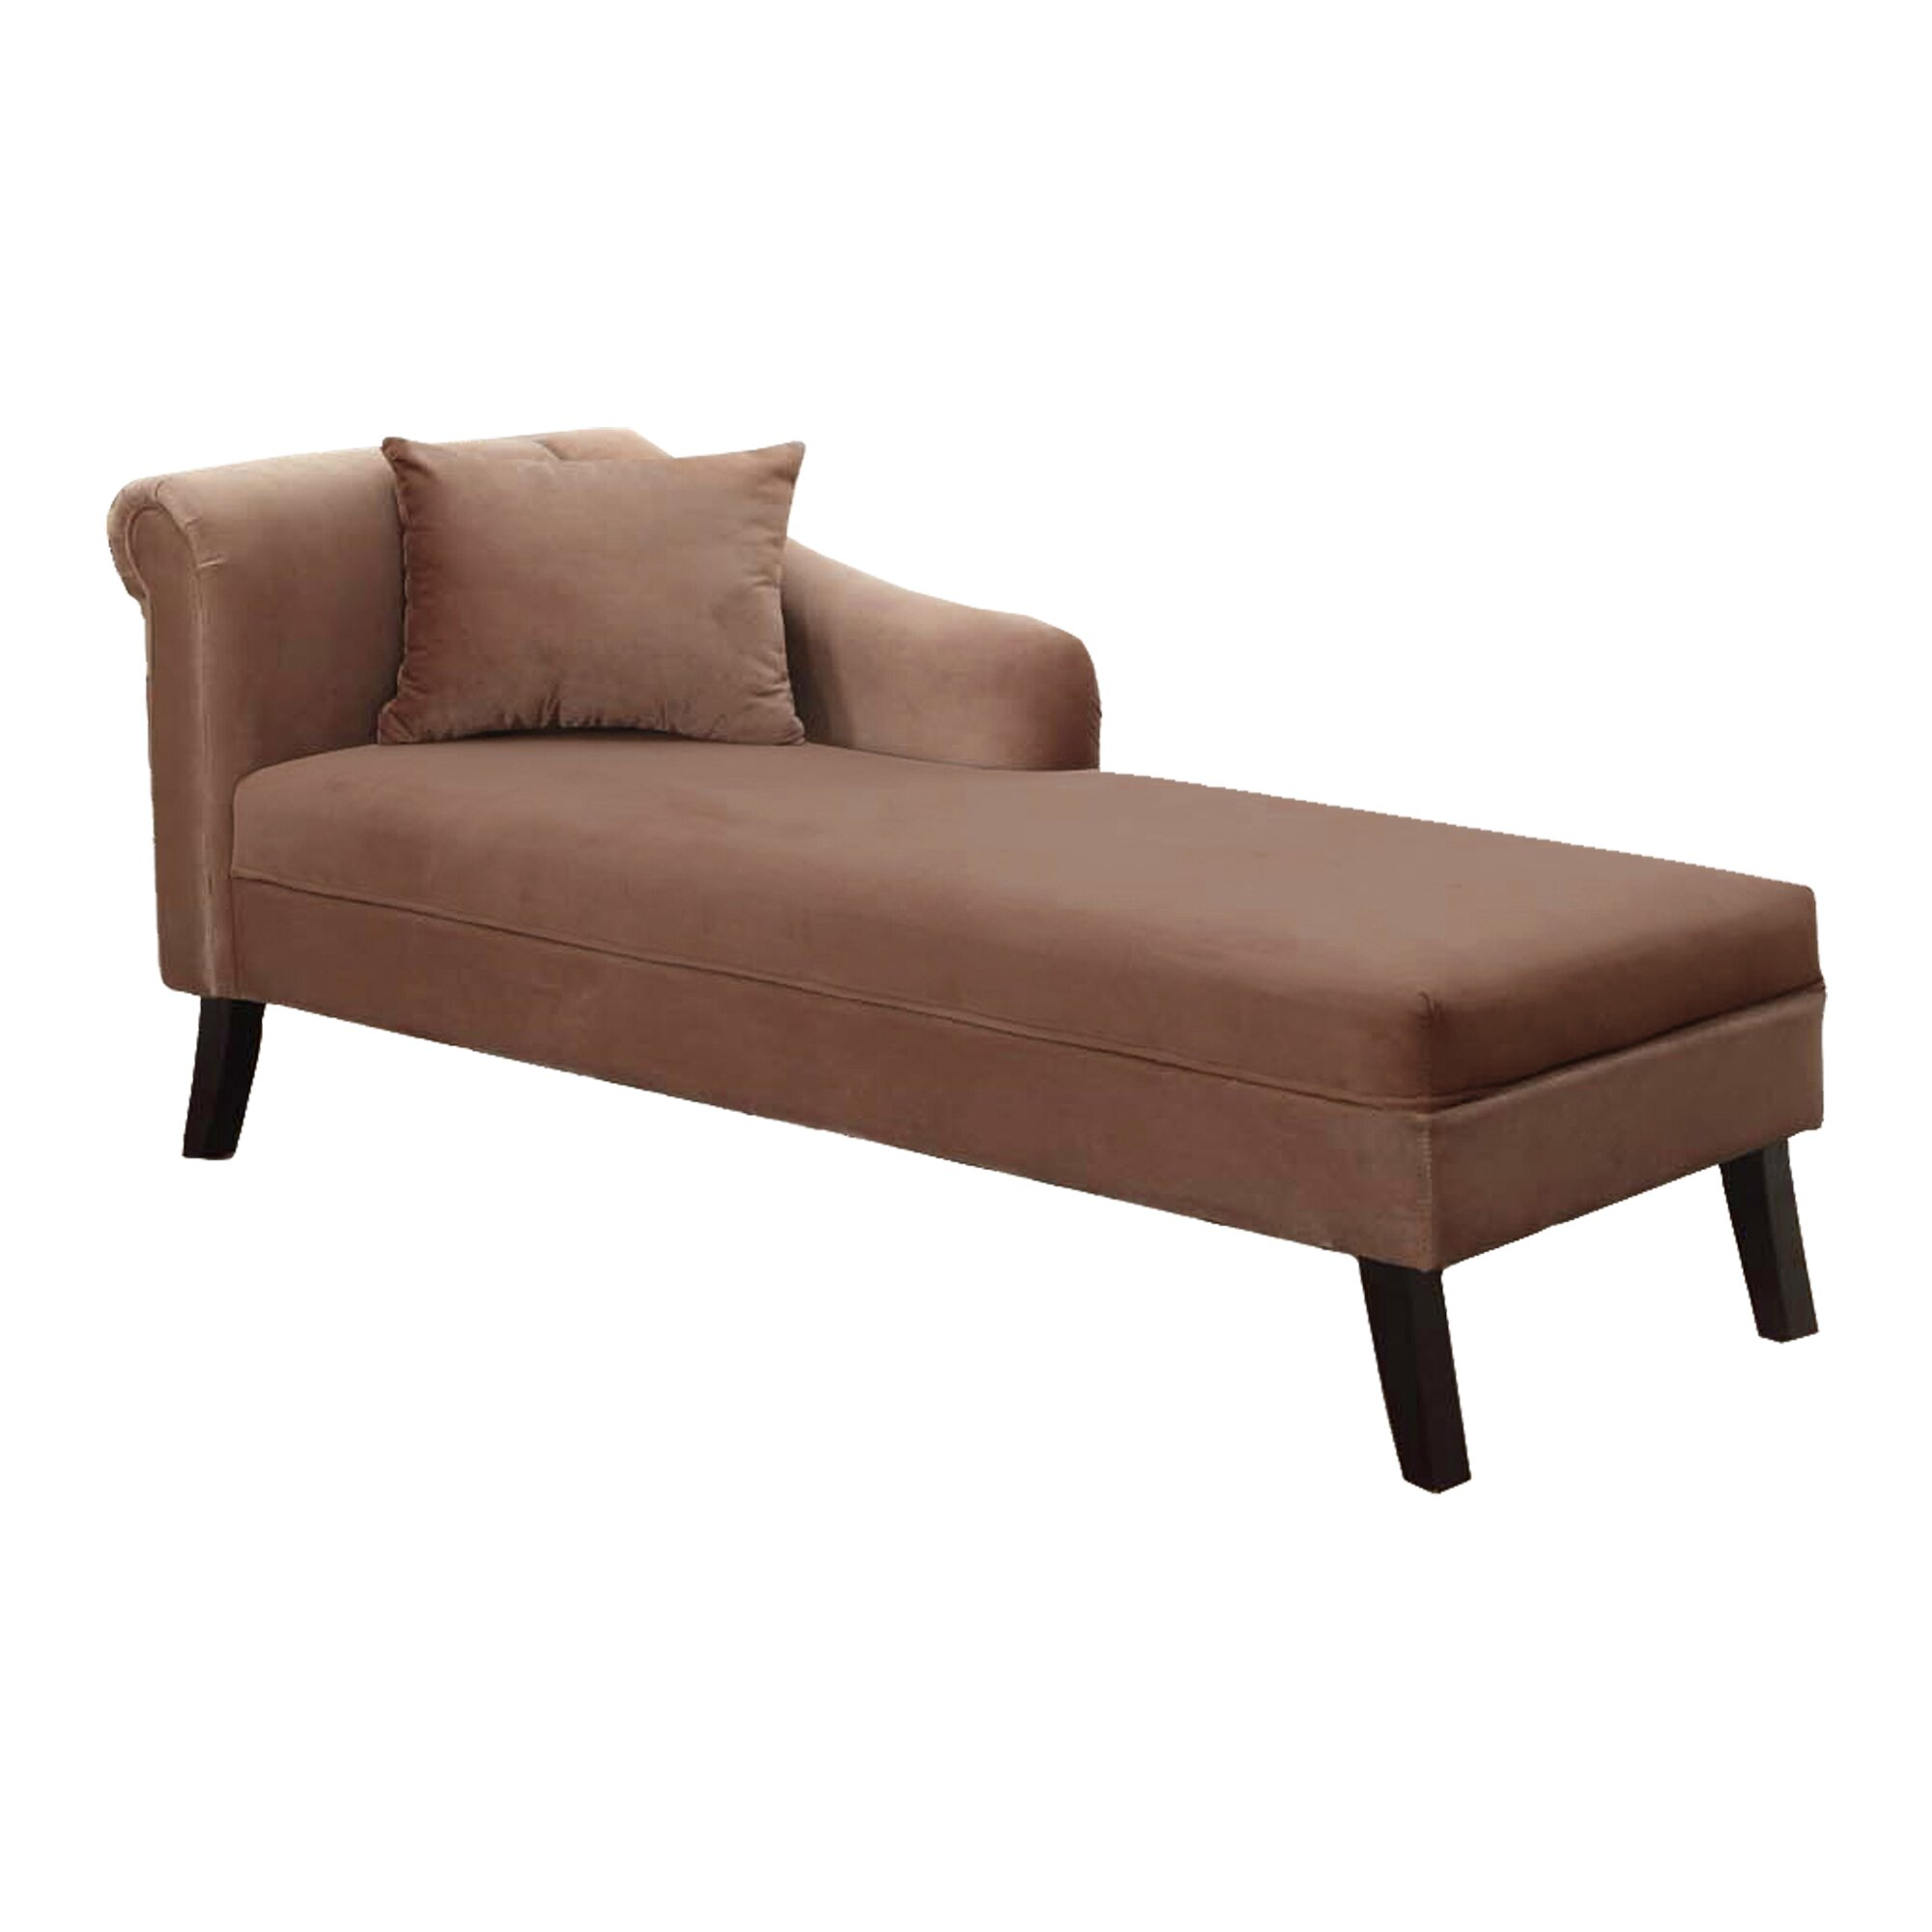 Armen living patterson chaise lounge reviews wayfair for Bathroom chaise lounge